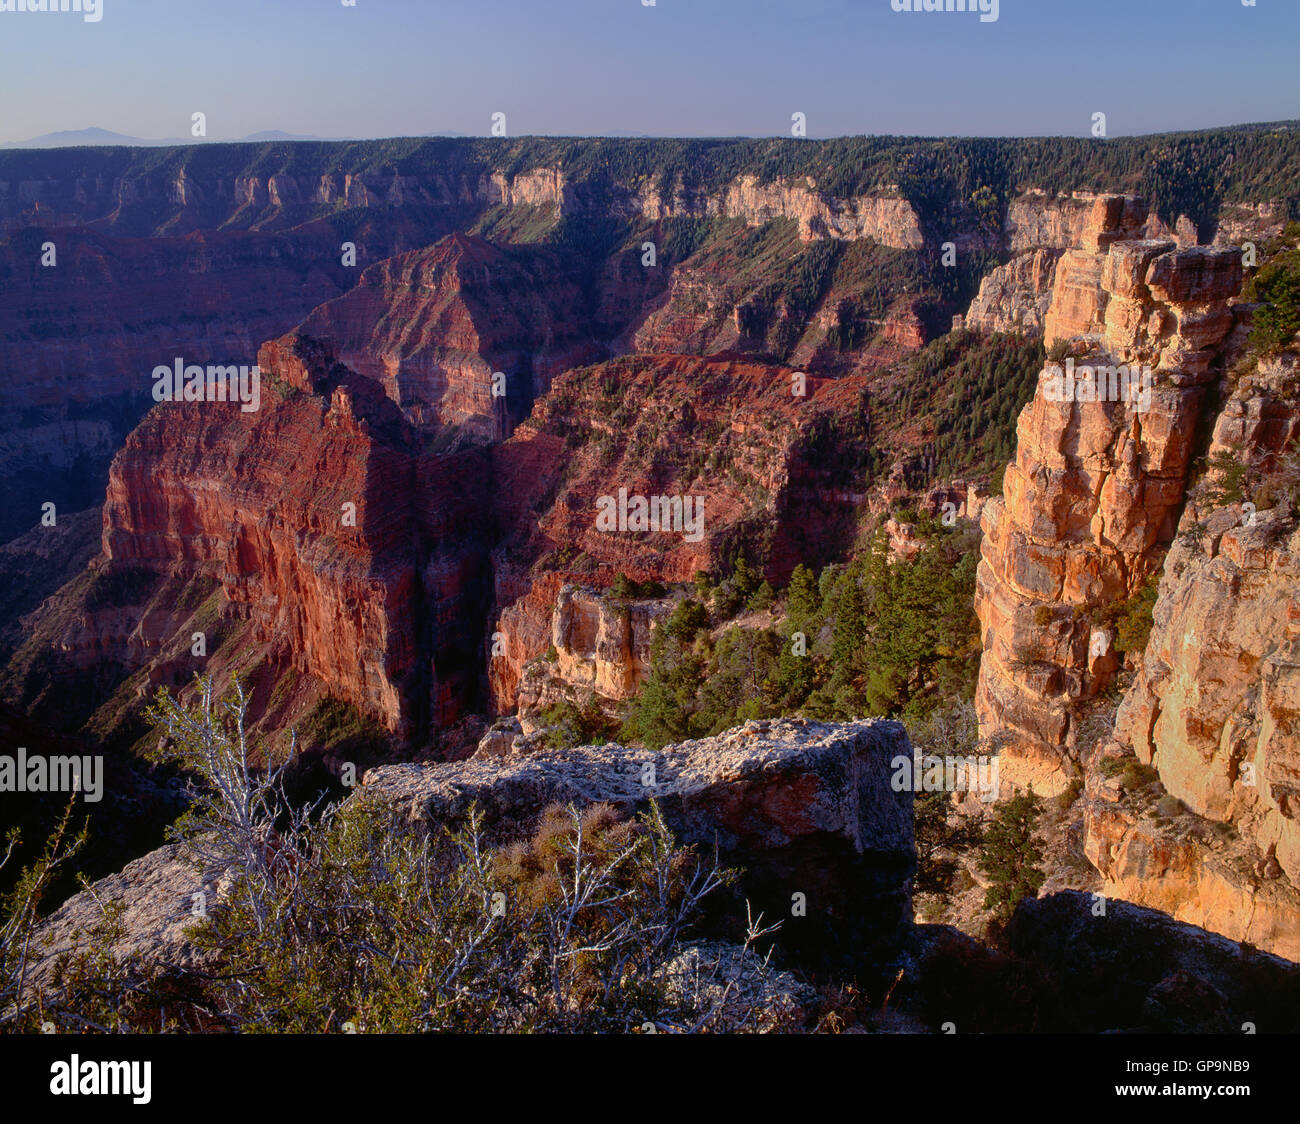 USA, Arizona, Grand Canyon National Park, View south from Point Imperial towards canyon depths and flat topped Walhalla - Stock Image